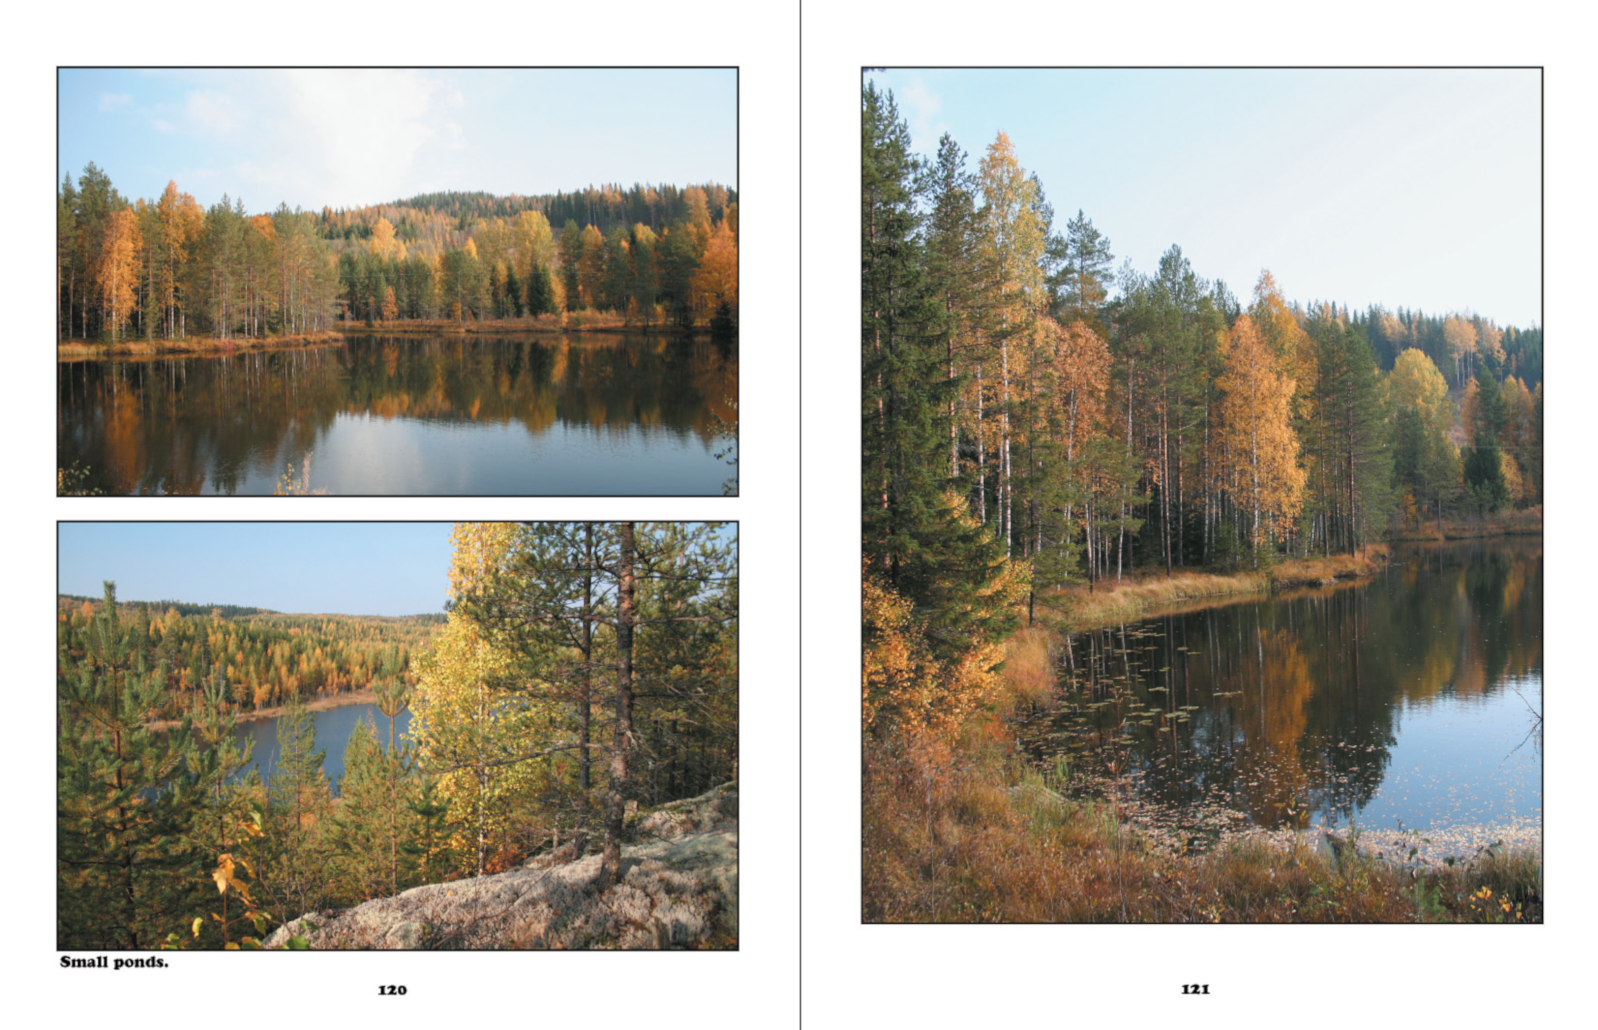 Finland The Four Seasons of Nature